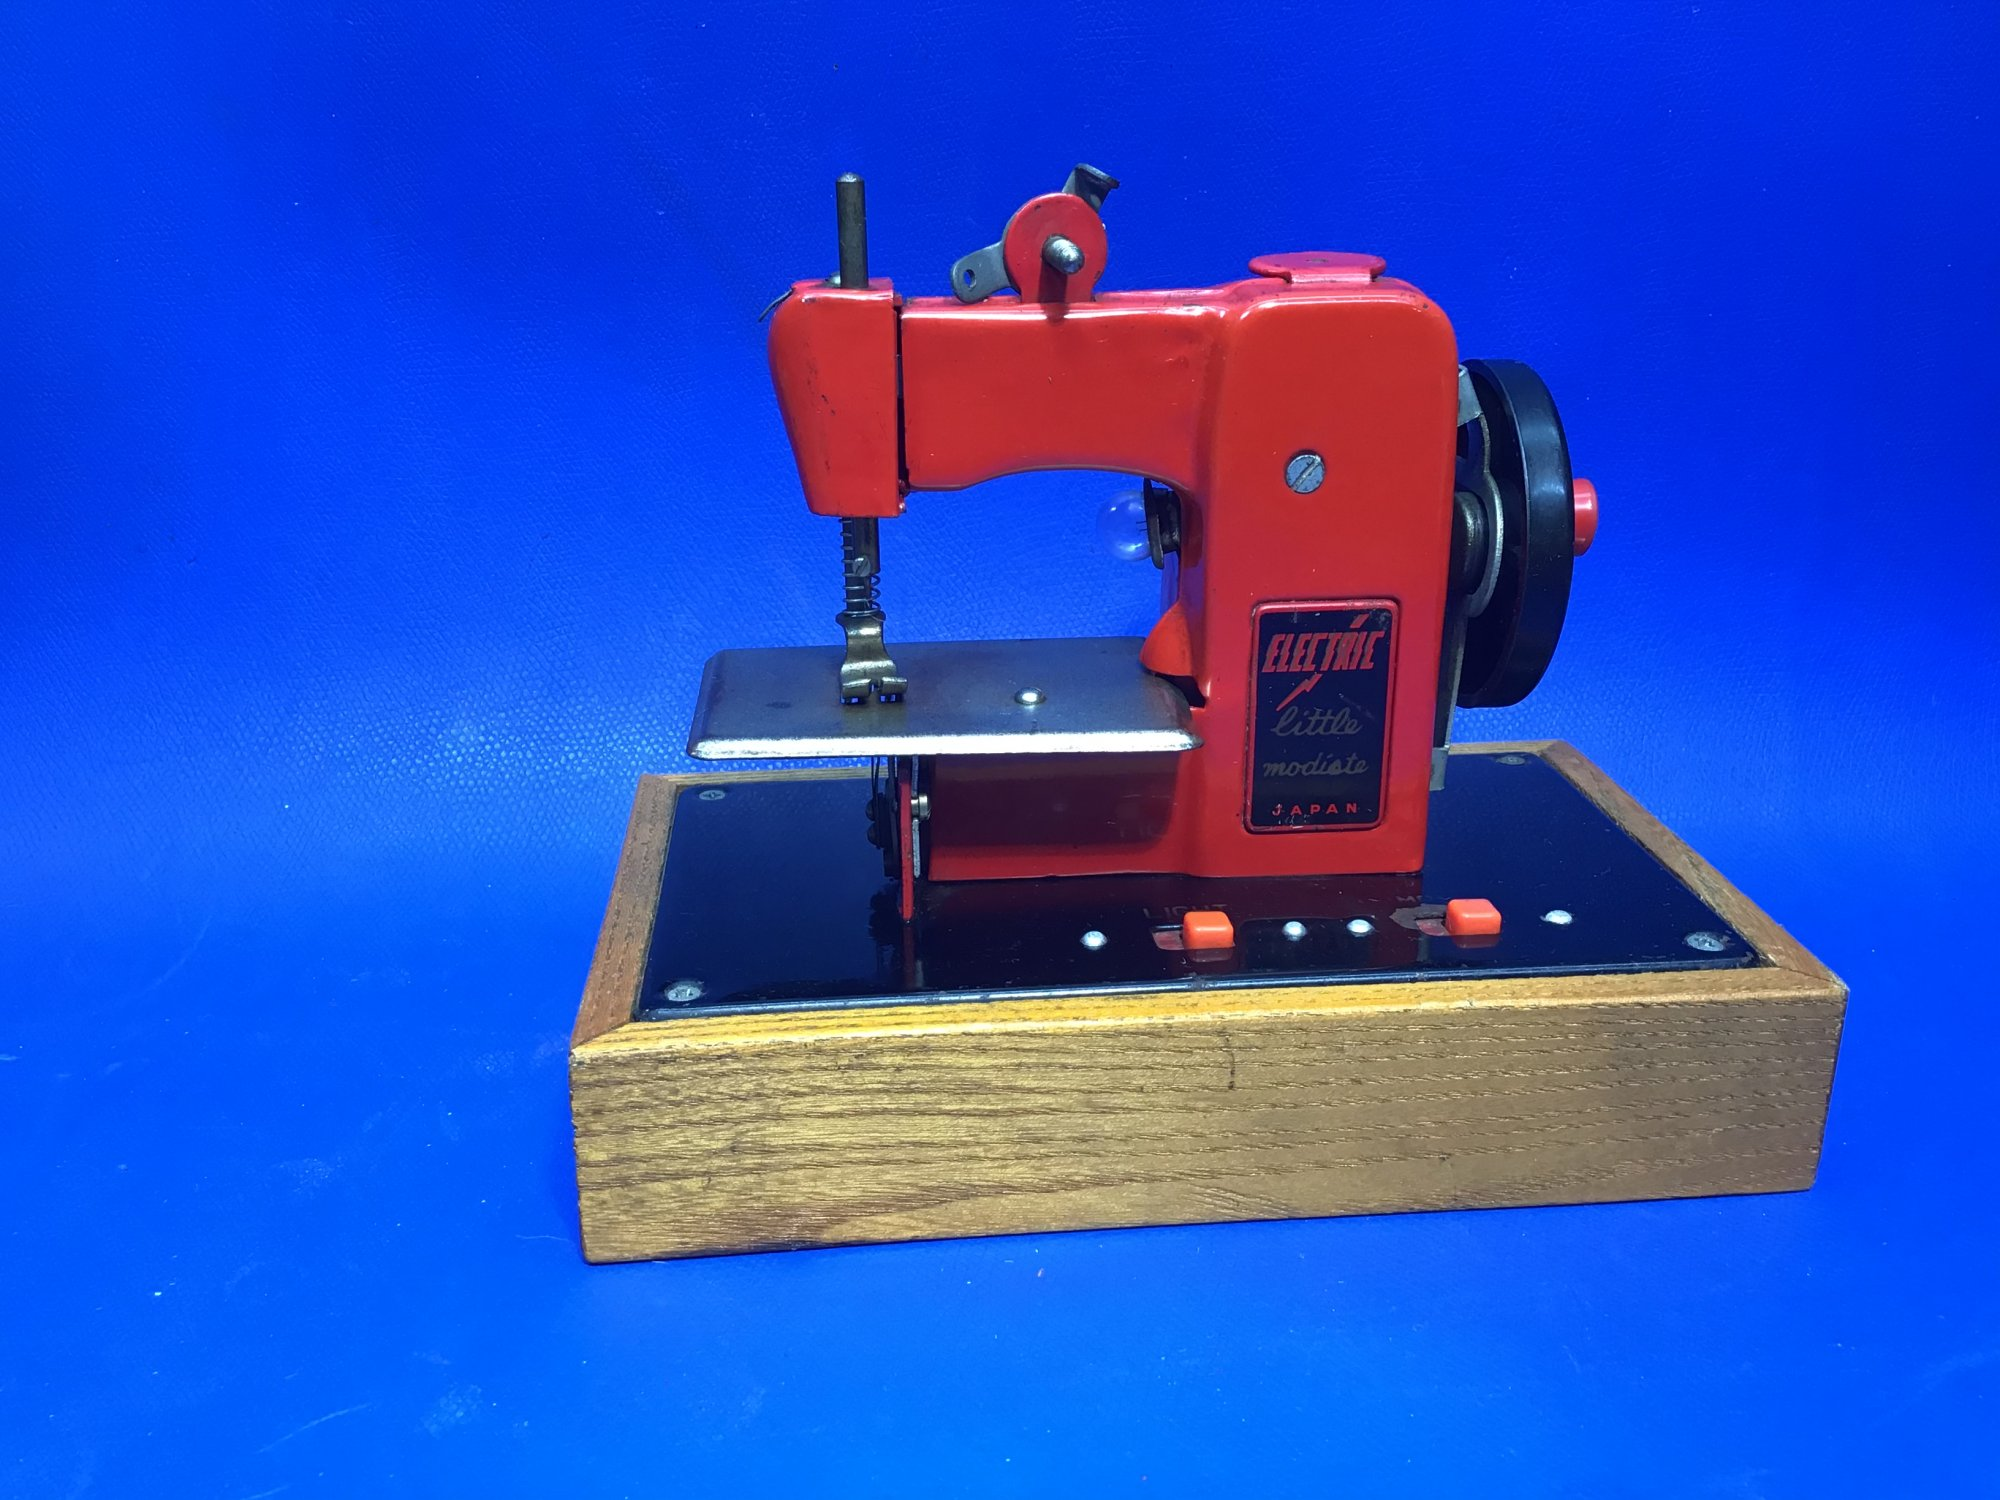 Red and Black Little Modiste Toy Sewing Machine